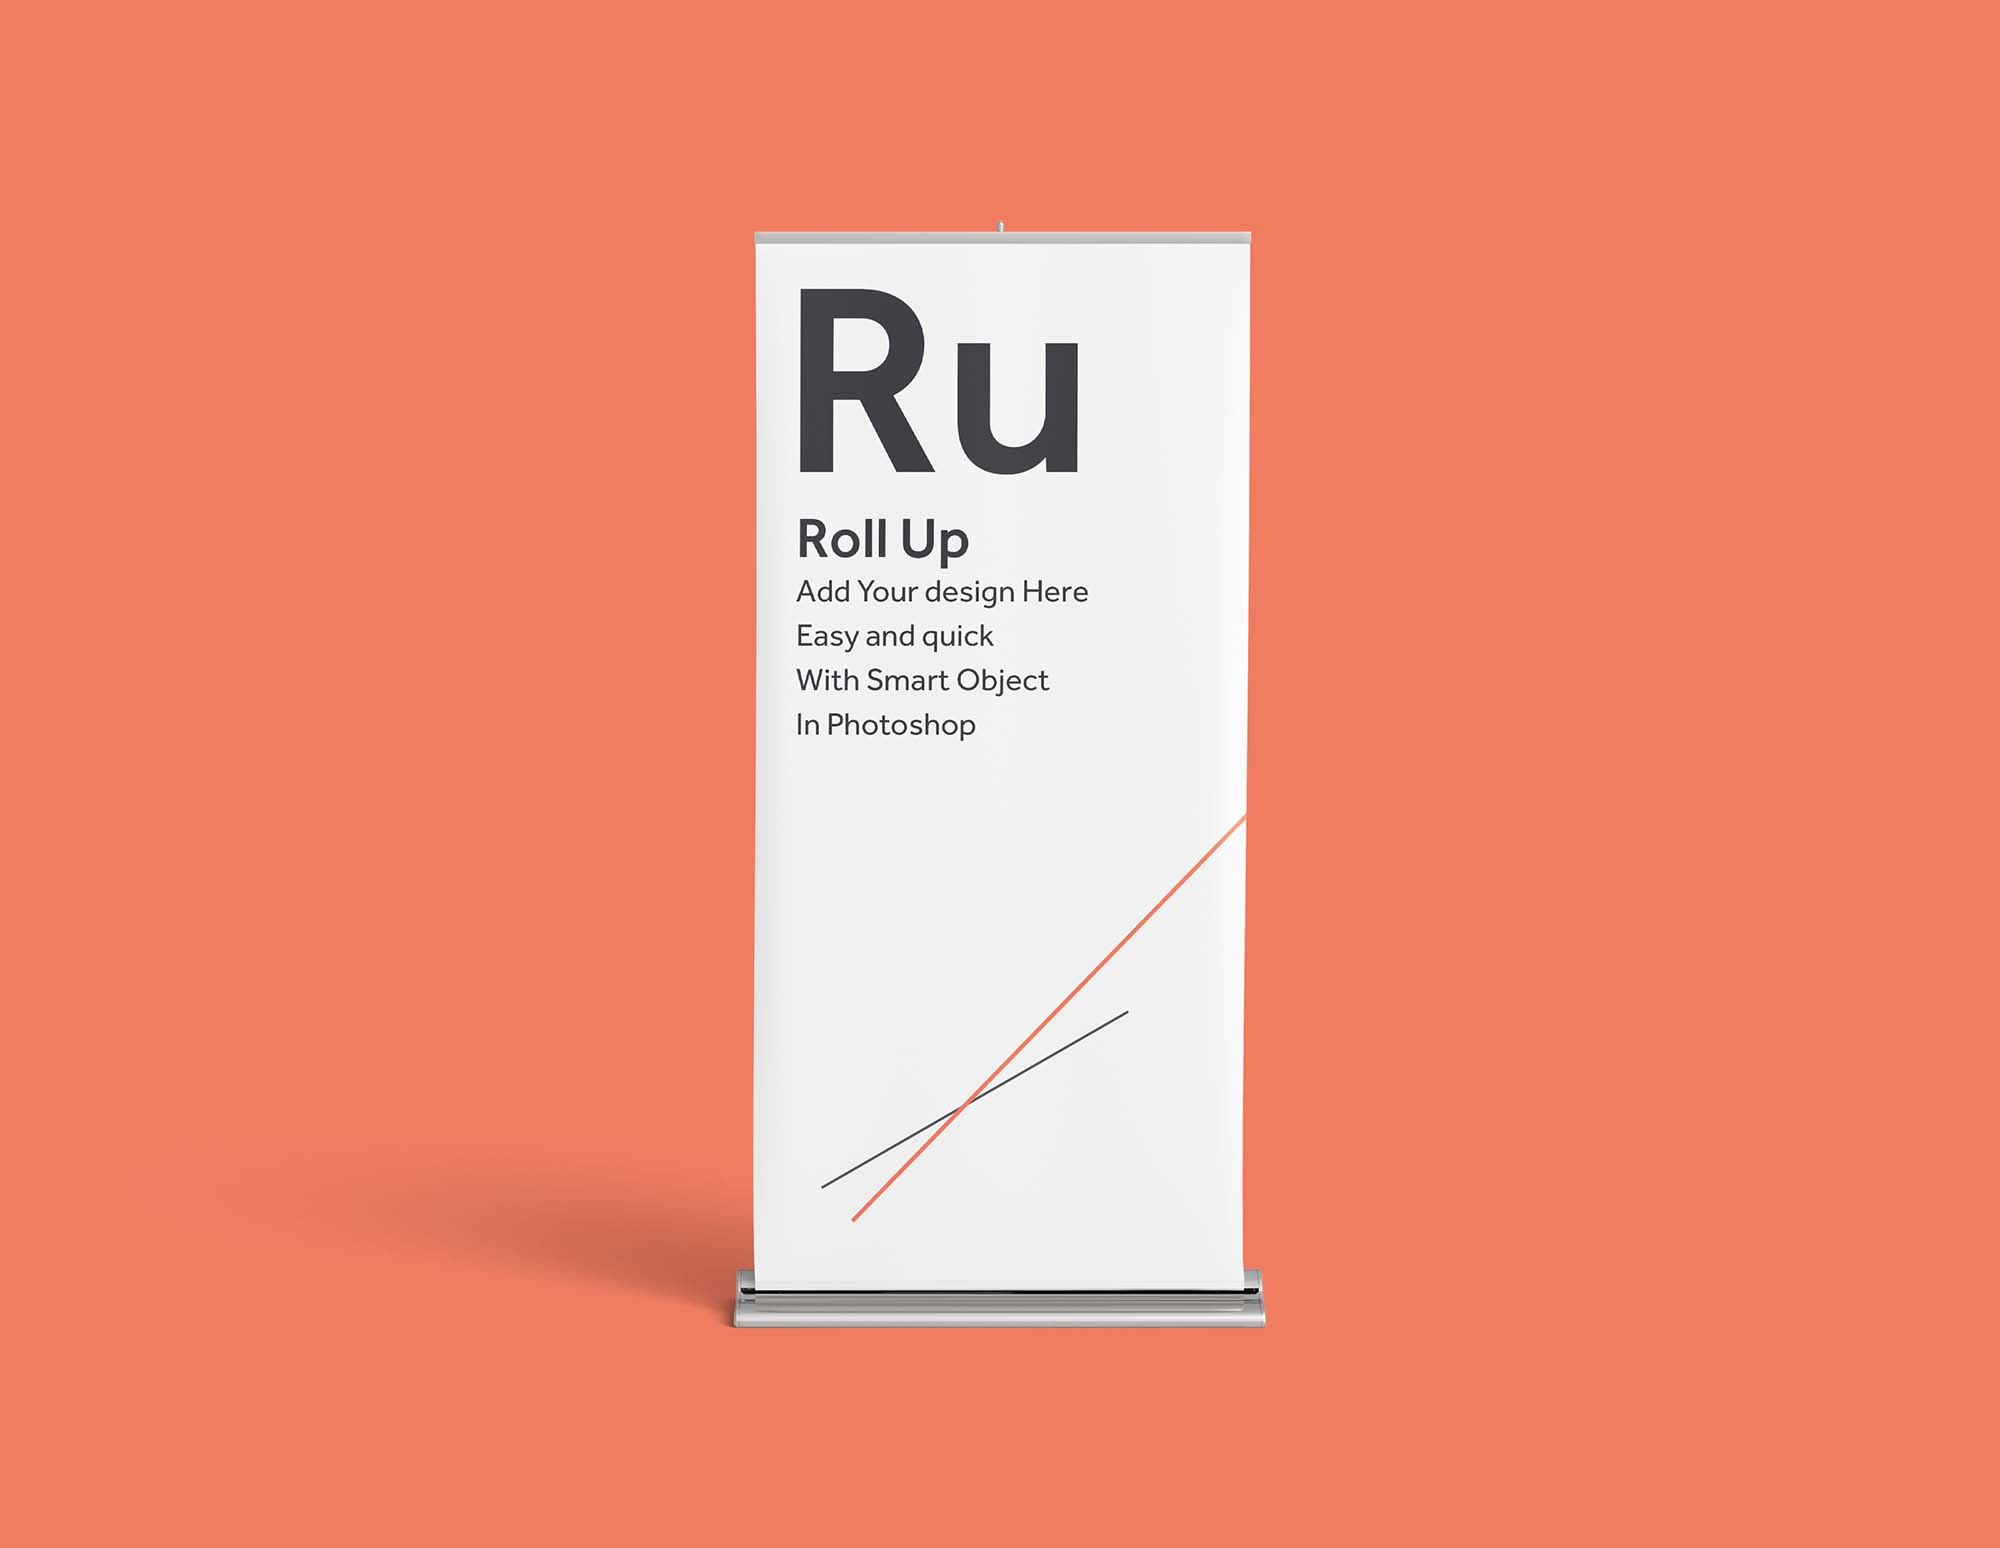 Free rollup mockup free rollup mockup